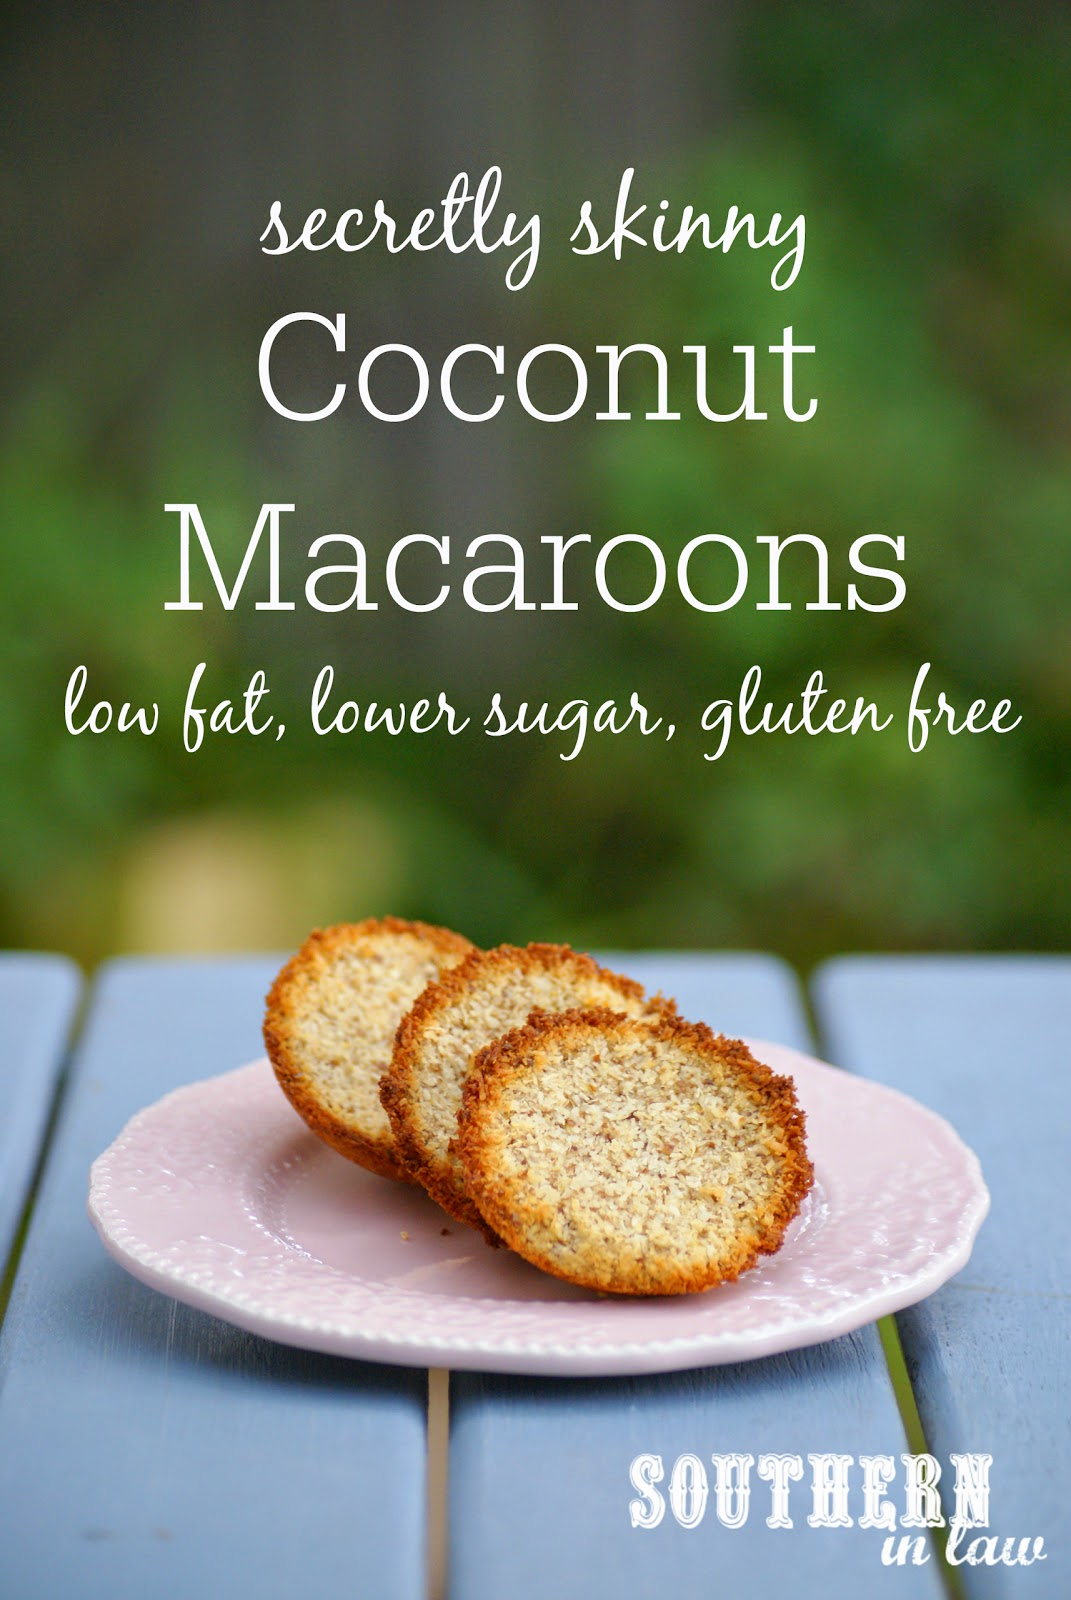 Secretly Skinny Coconut Macaroons - Low fat, low sugar, gluten free, healthy, grain free, paleo